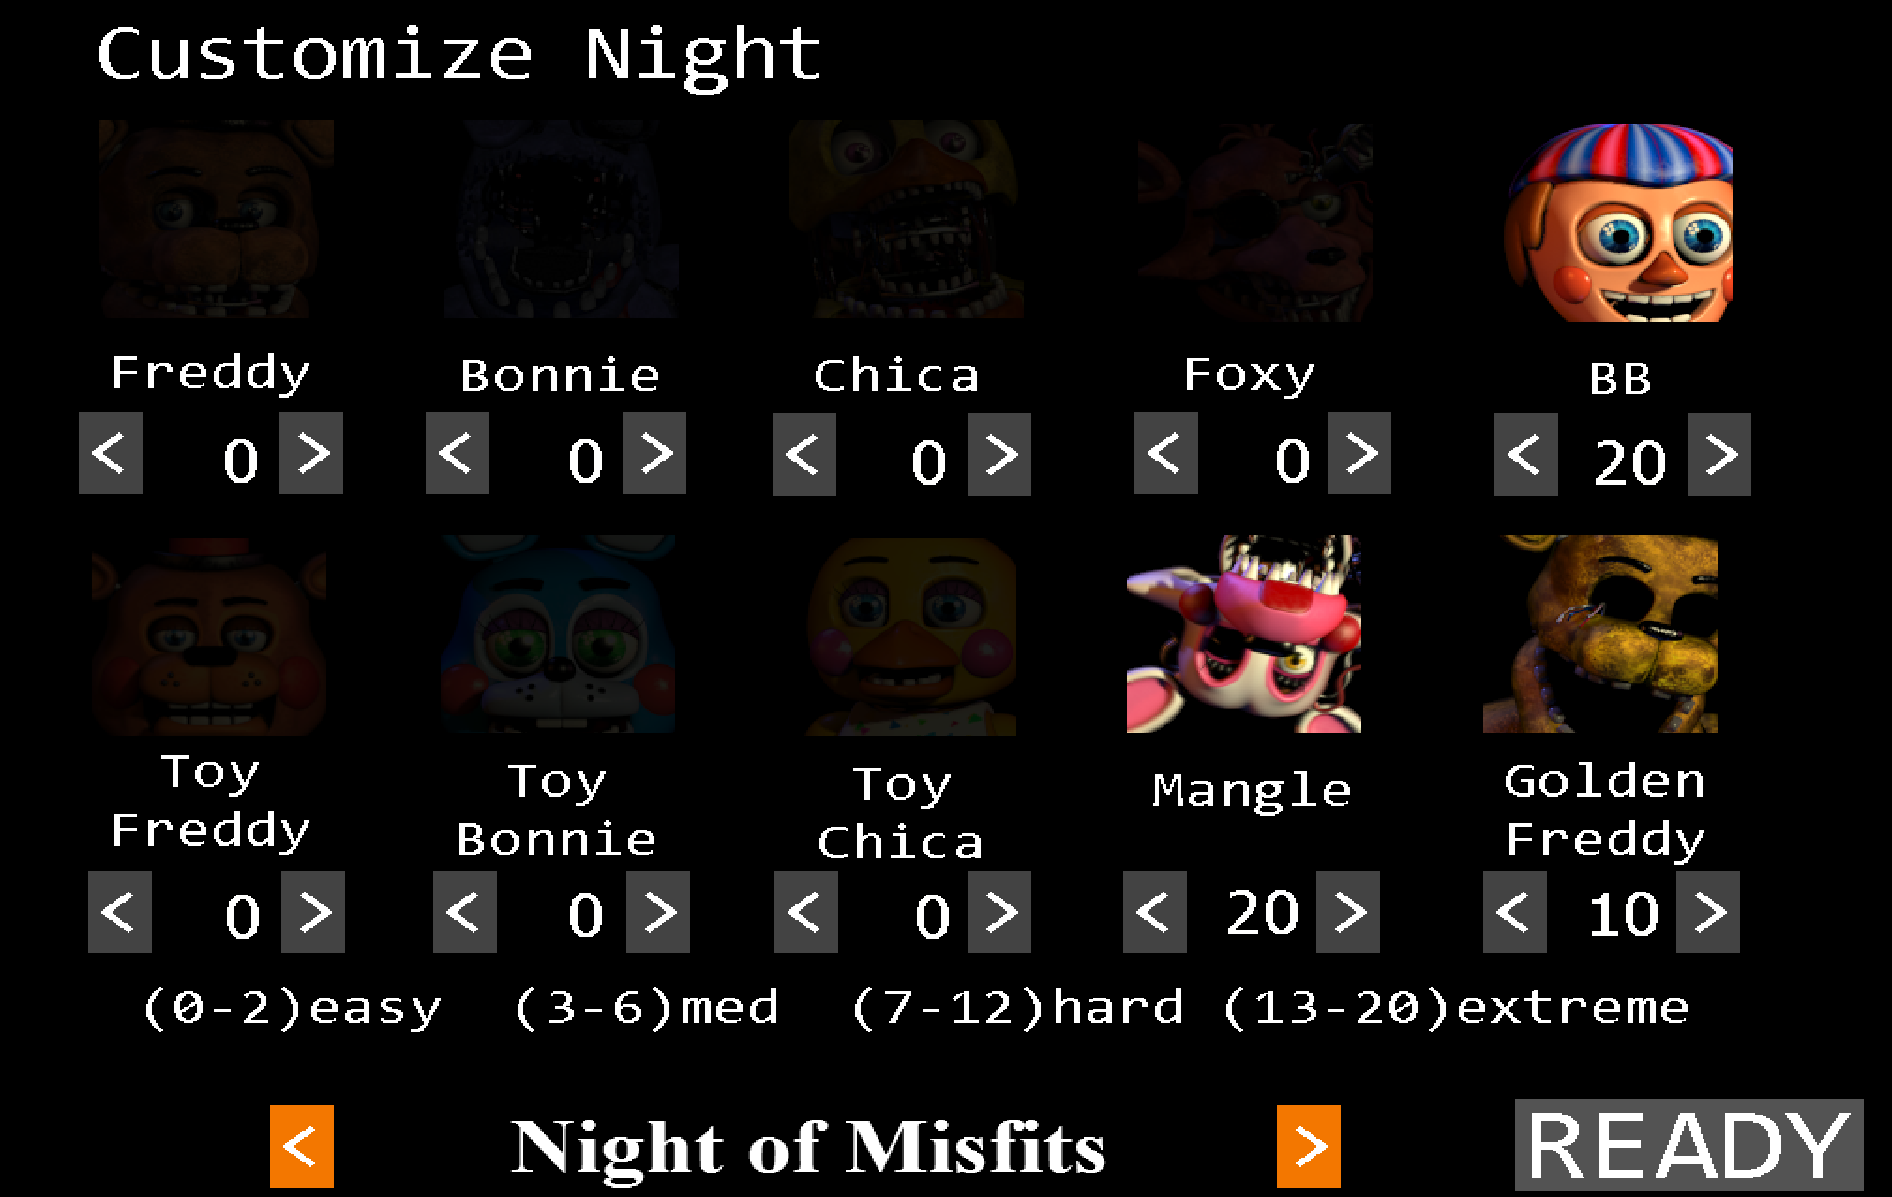 Noche personalizada fnaf 2 five nights at freddy s wiki